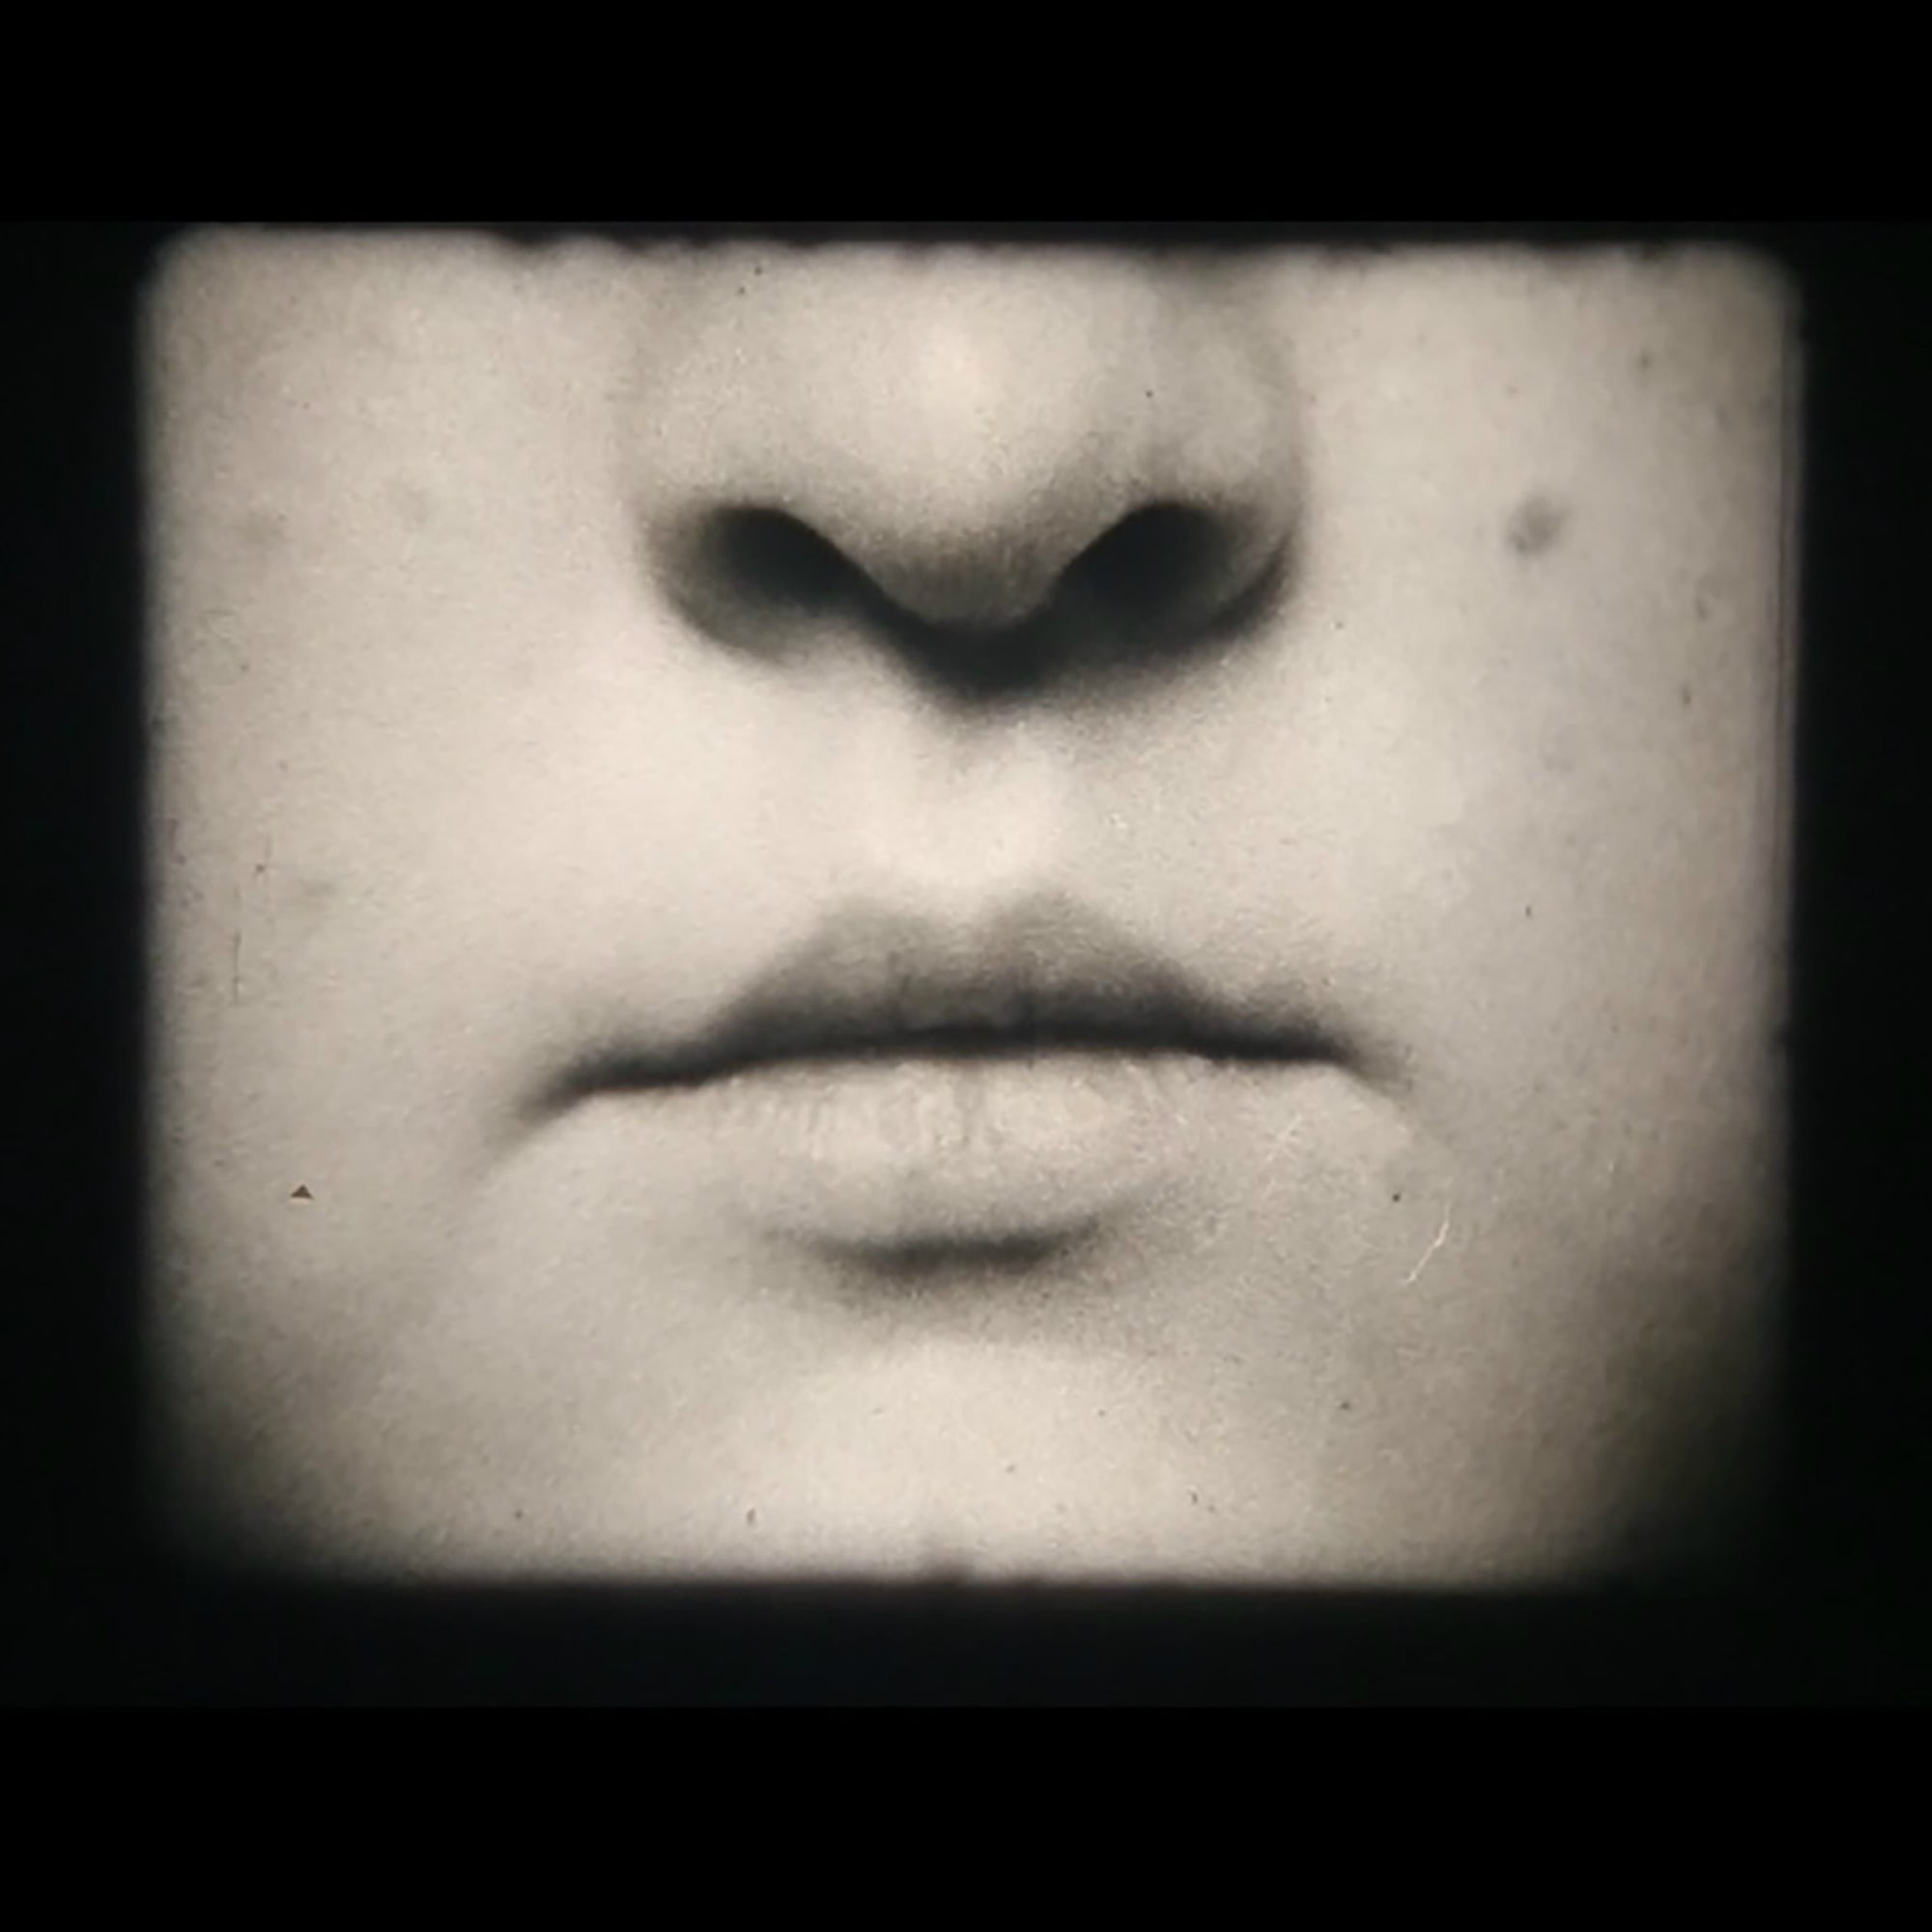 Black and white photo of a woman's nose and lips